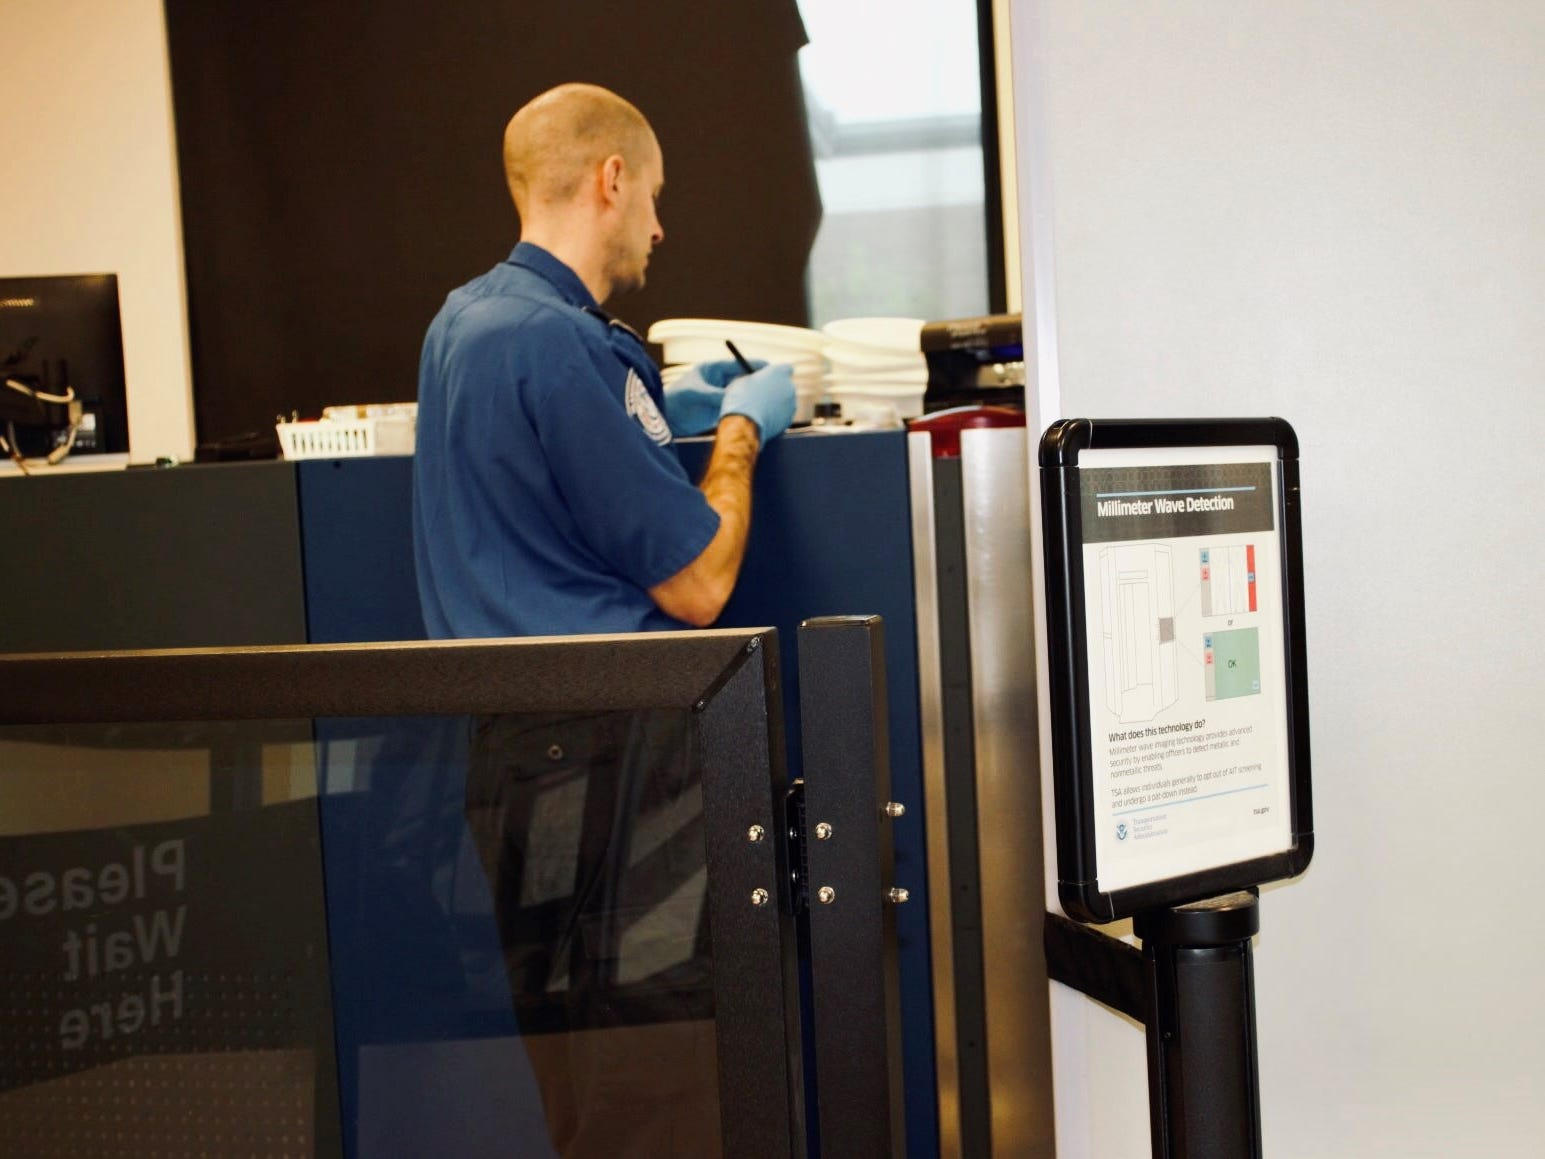 TSA officials found what appeared to be an explosive device during a luggage scan.